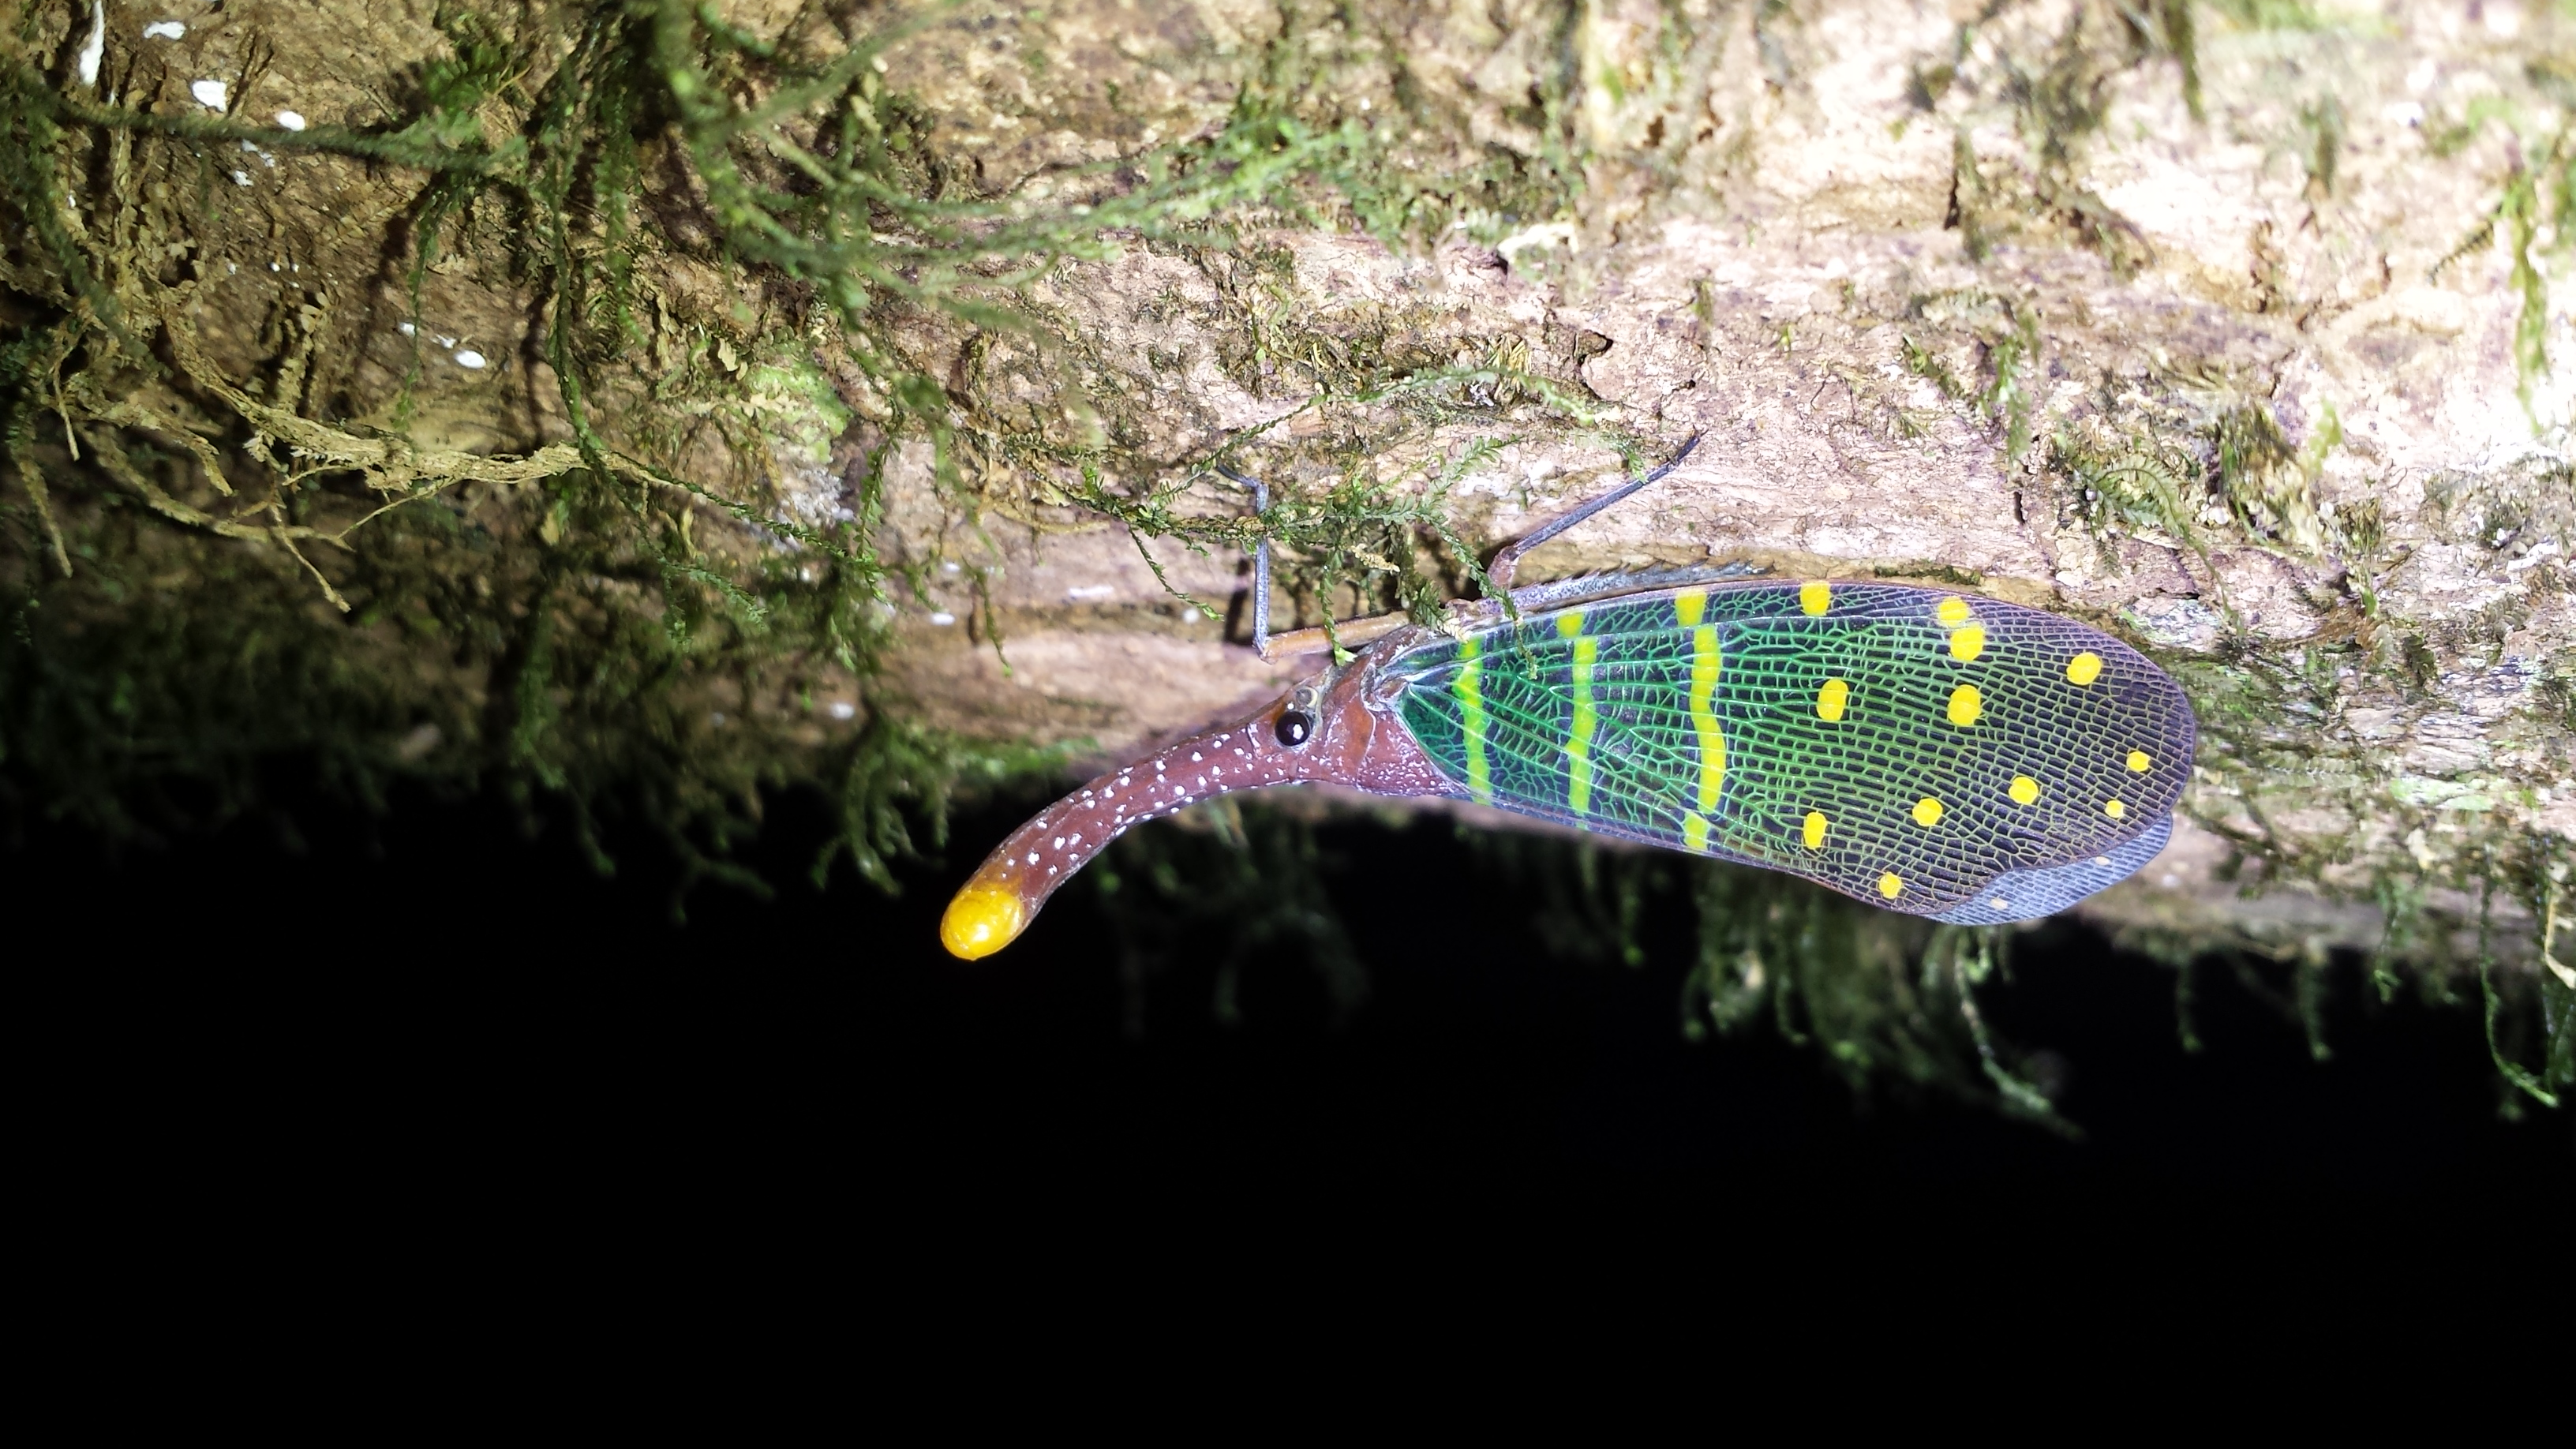 a very colorful latern bug.